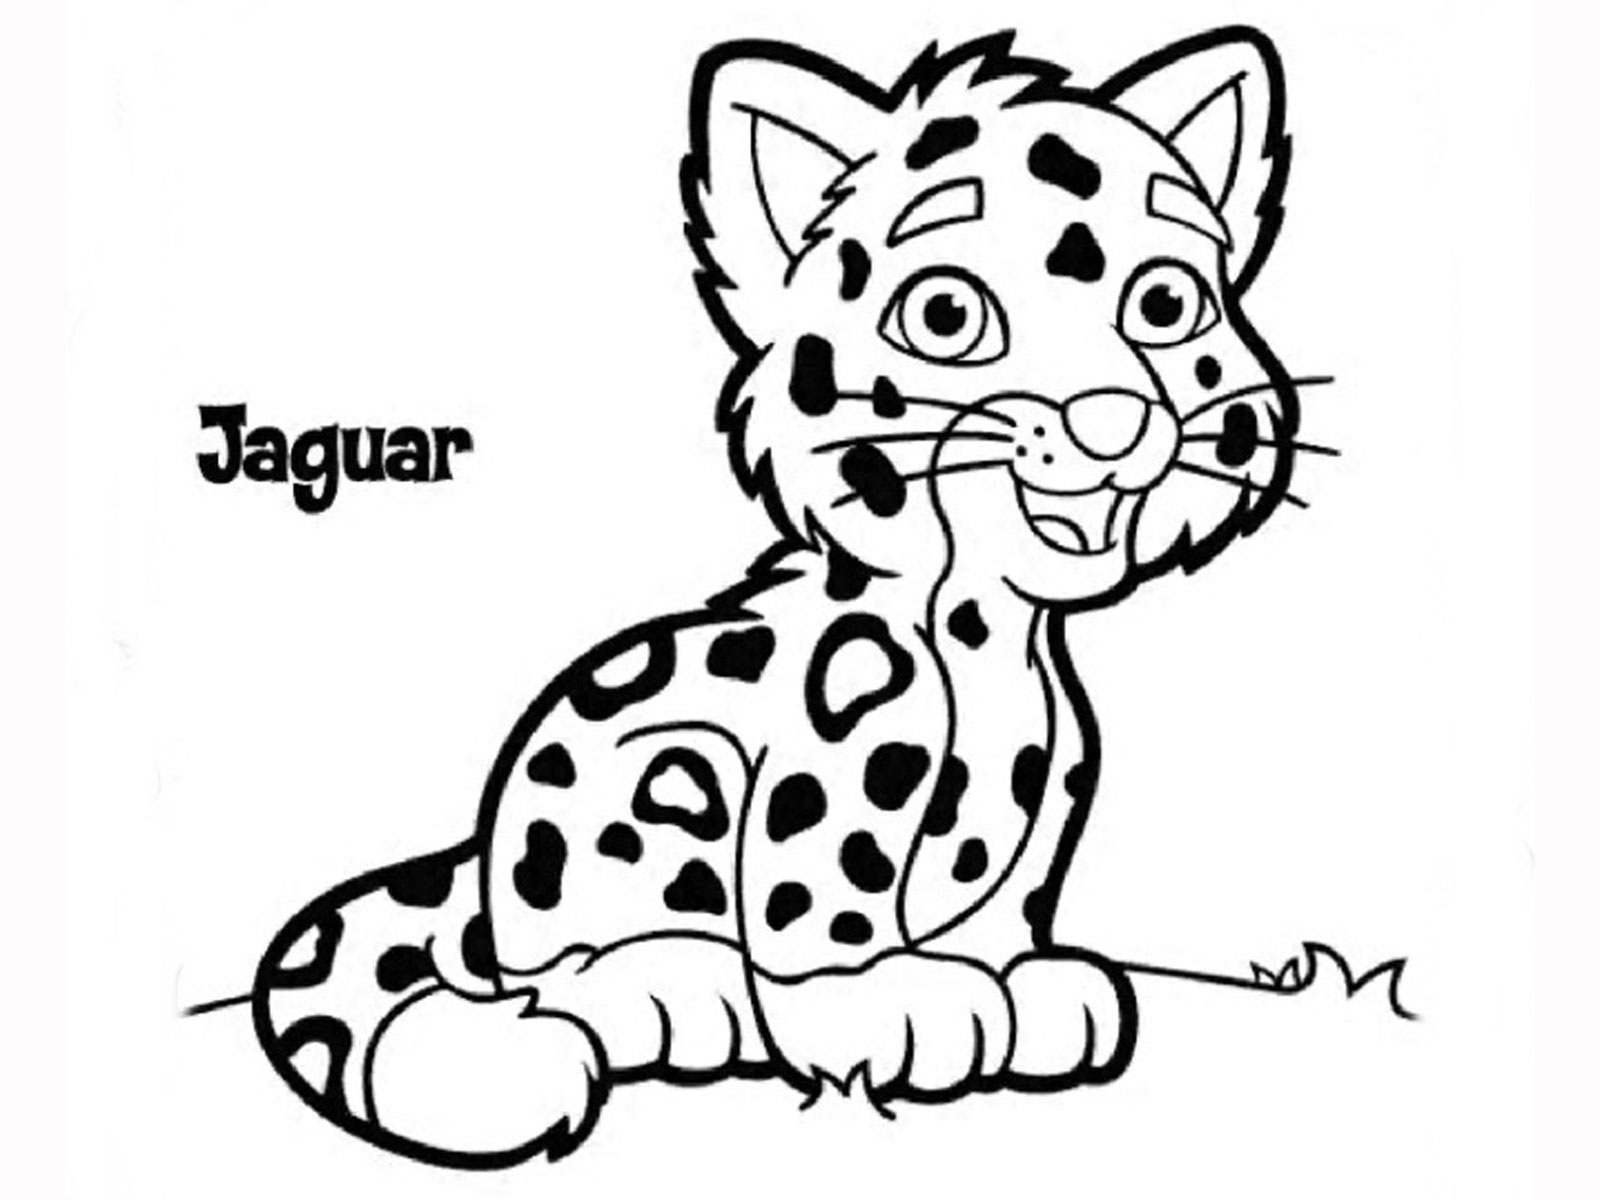 1600x1200 Cartoon Jaguar Drawings Mascot